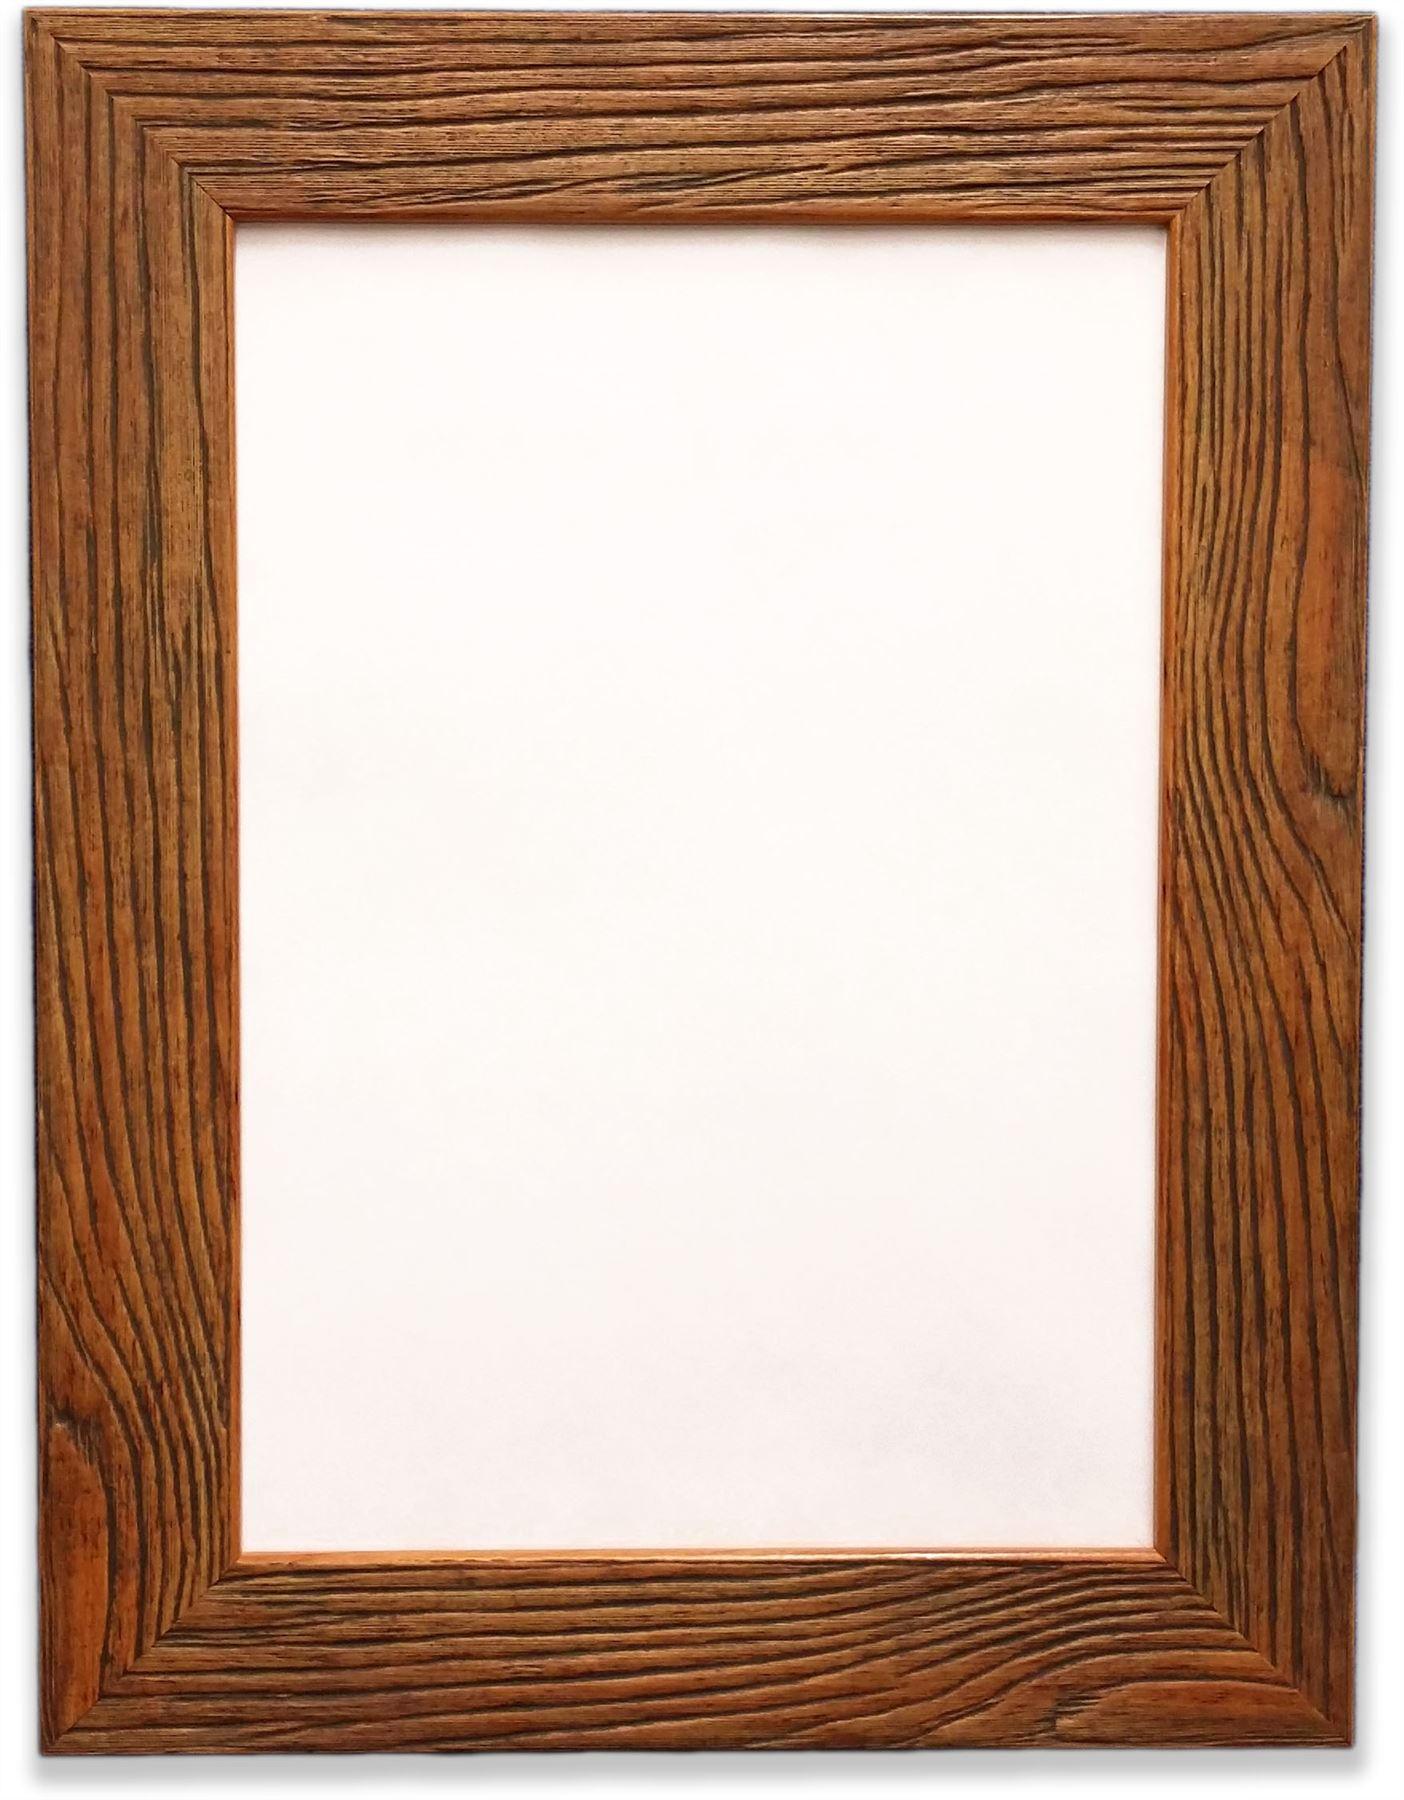 Save on Wooden Picture Frames Trending price is based on prices over last 90 days. DAX - Desk/Wall Photo Frame, Wood, 11 x 14 - Rosewood/Black Free Shipping NEW.